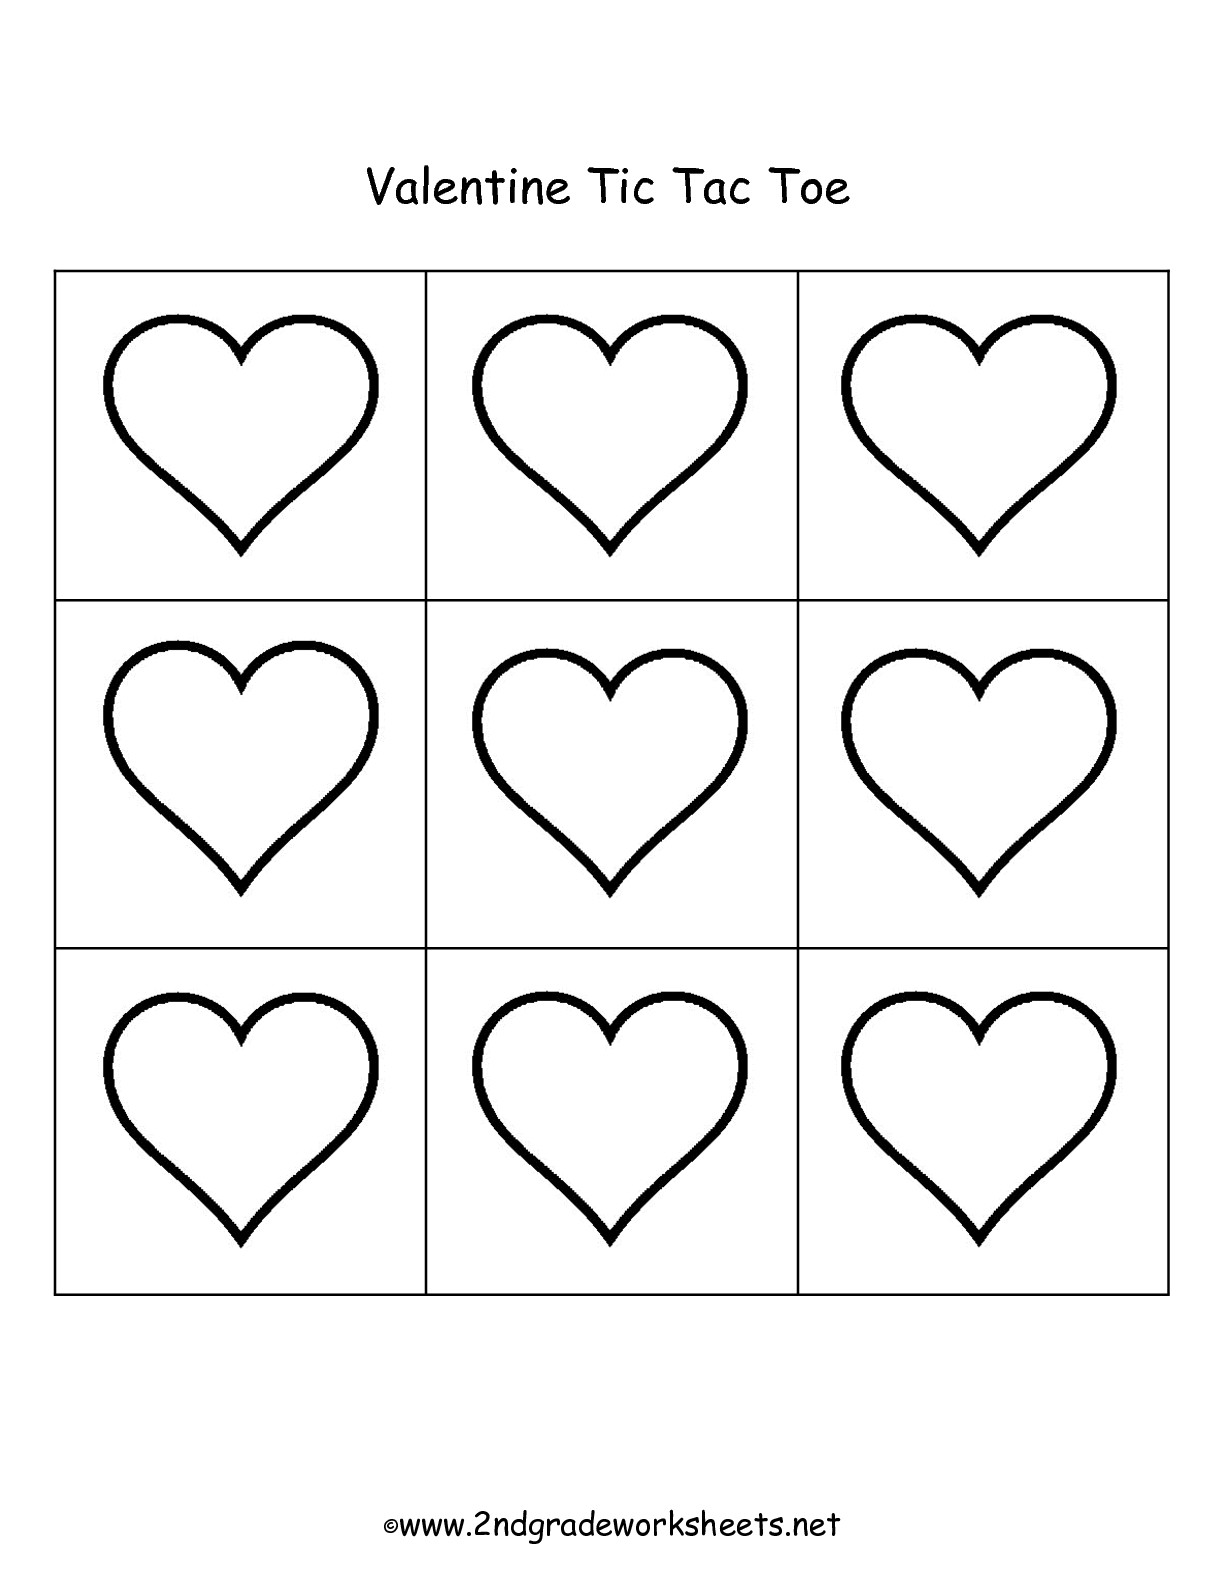 Worksheets Valentines Day Worksheet valentines day printouts and worksheets worksheet